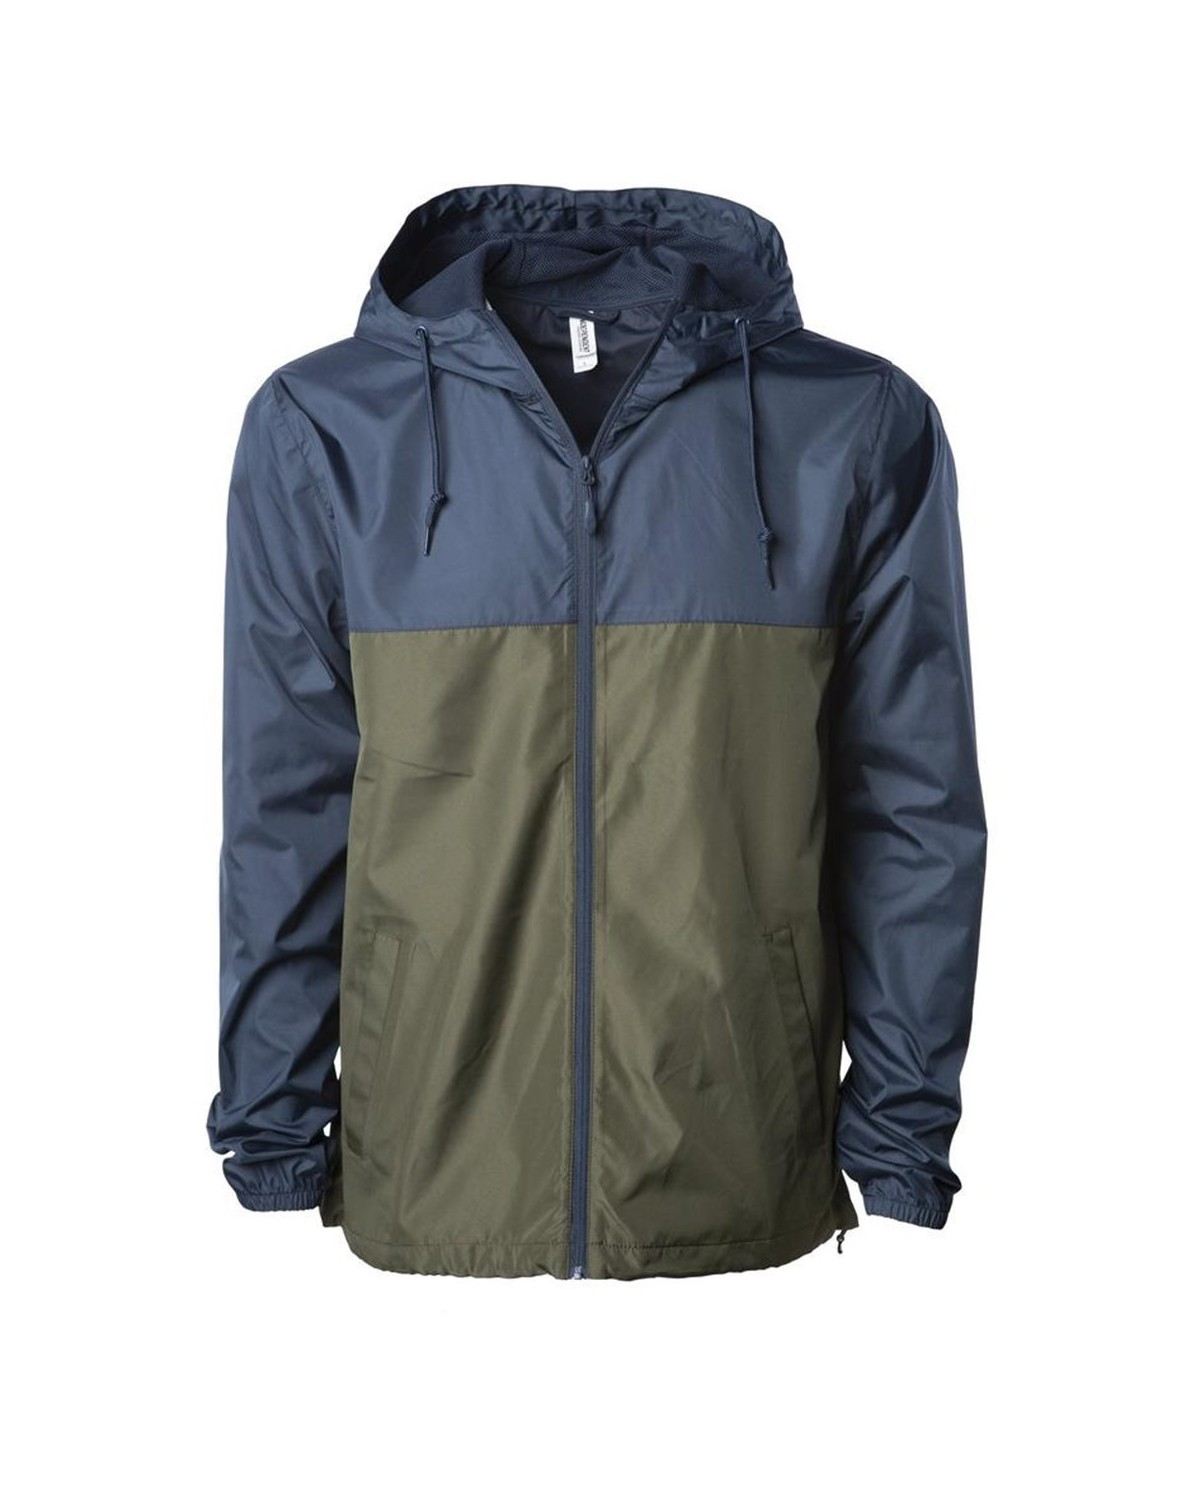 EXP54LWZ Independent Trading Company Classic Navy/ Army